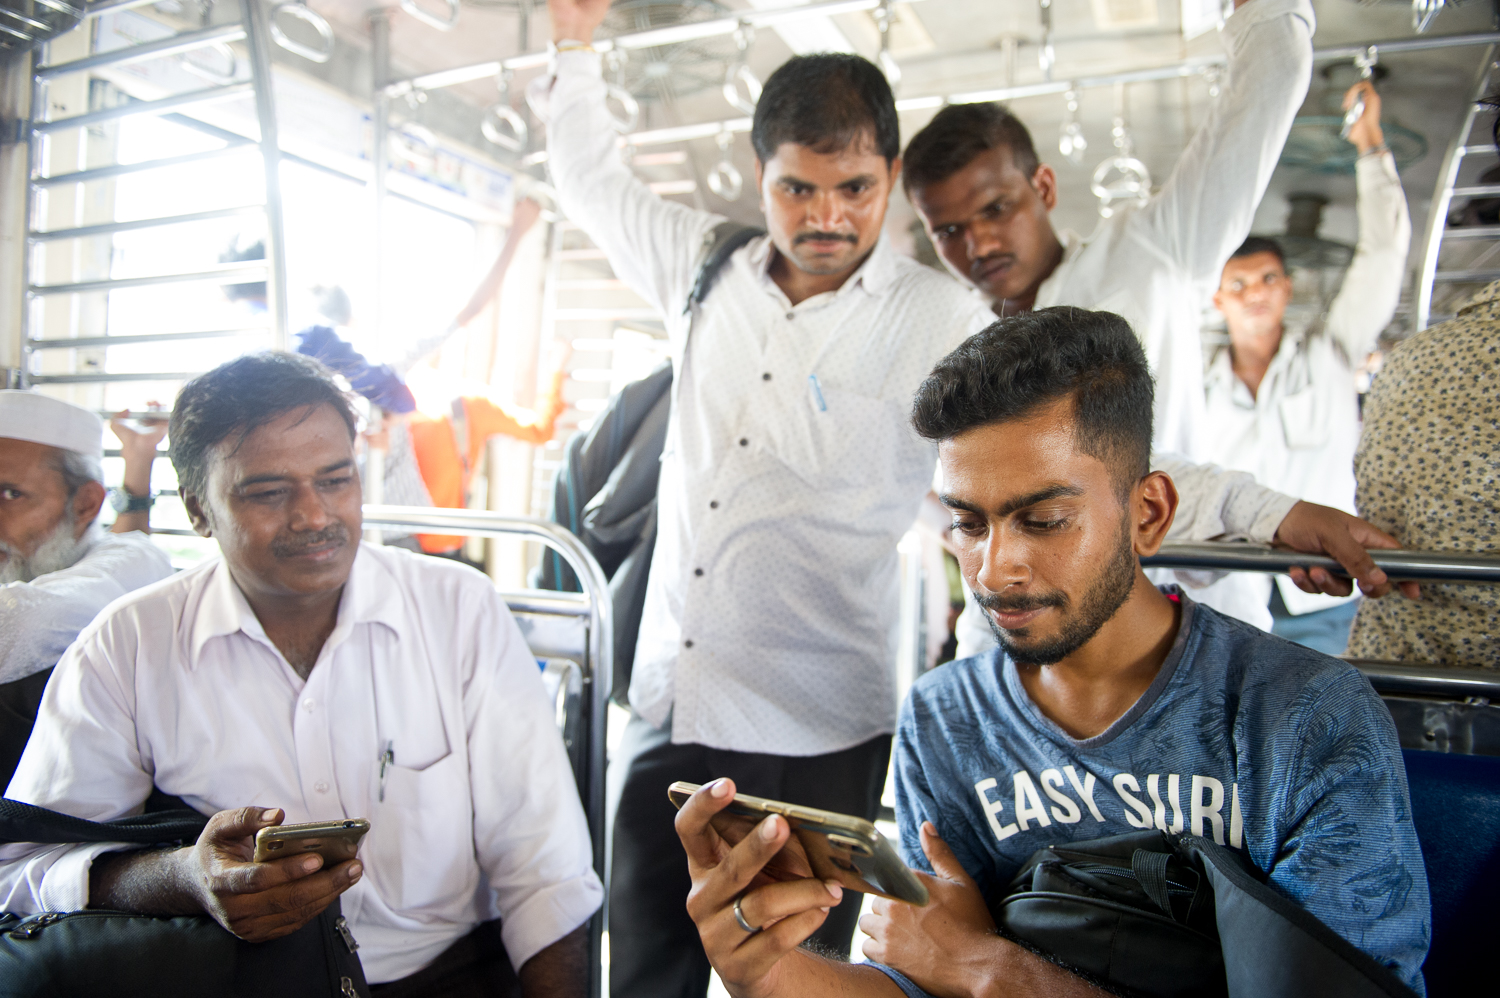 Watching cricket on a local train, Mumbai, 2019